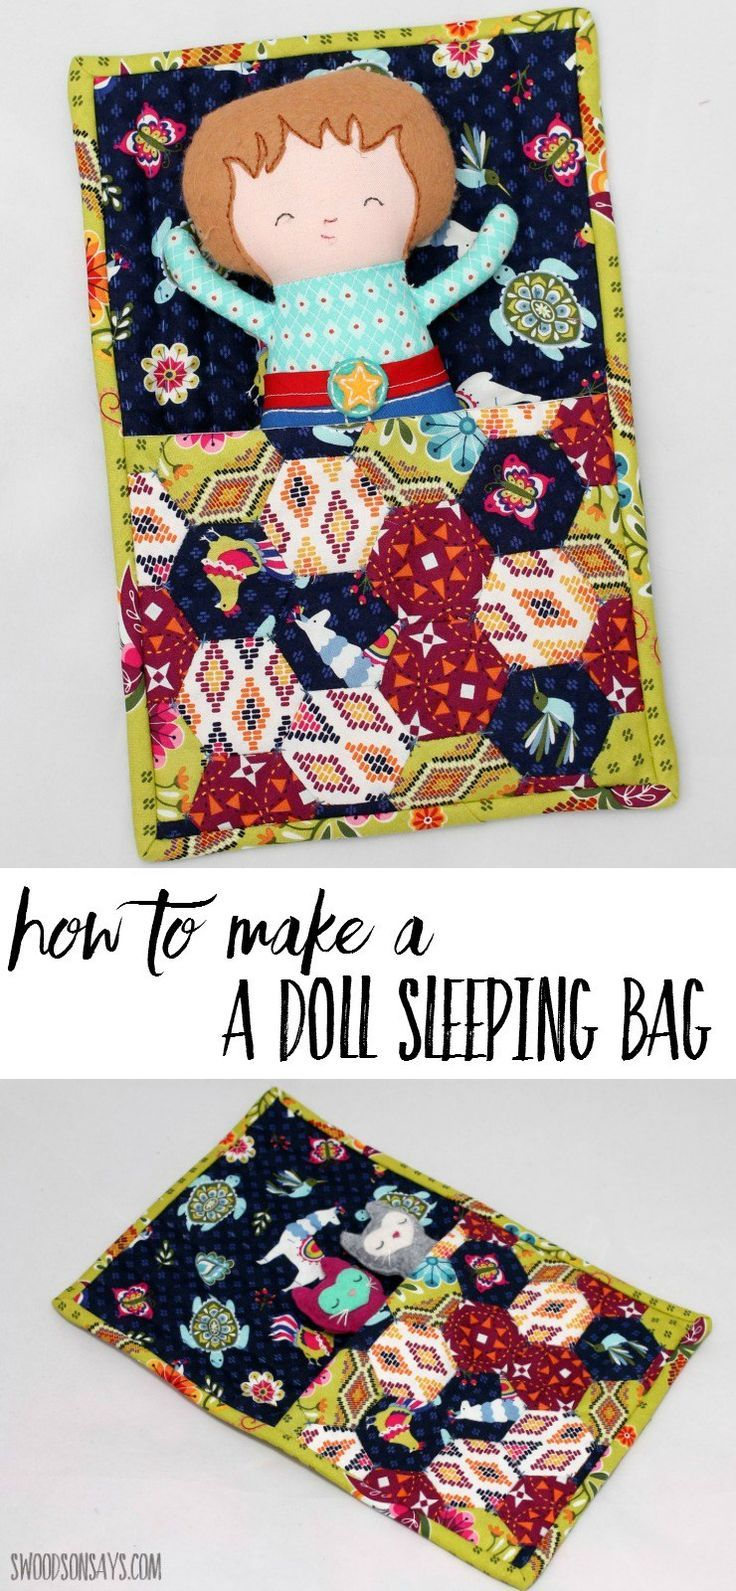 How To Make A Doll Sleeping Bag Crafts Sewing Pinterest